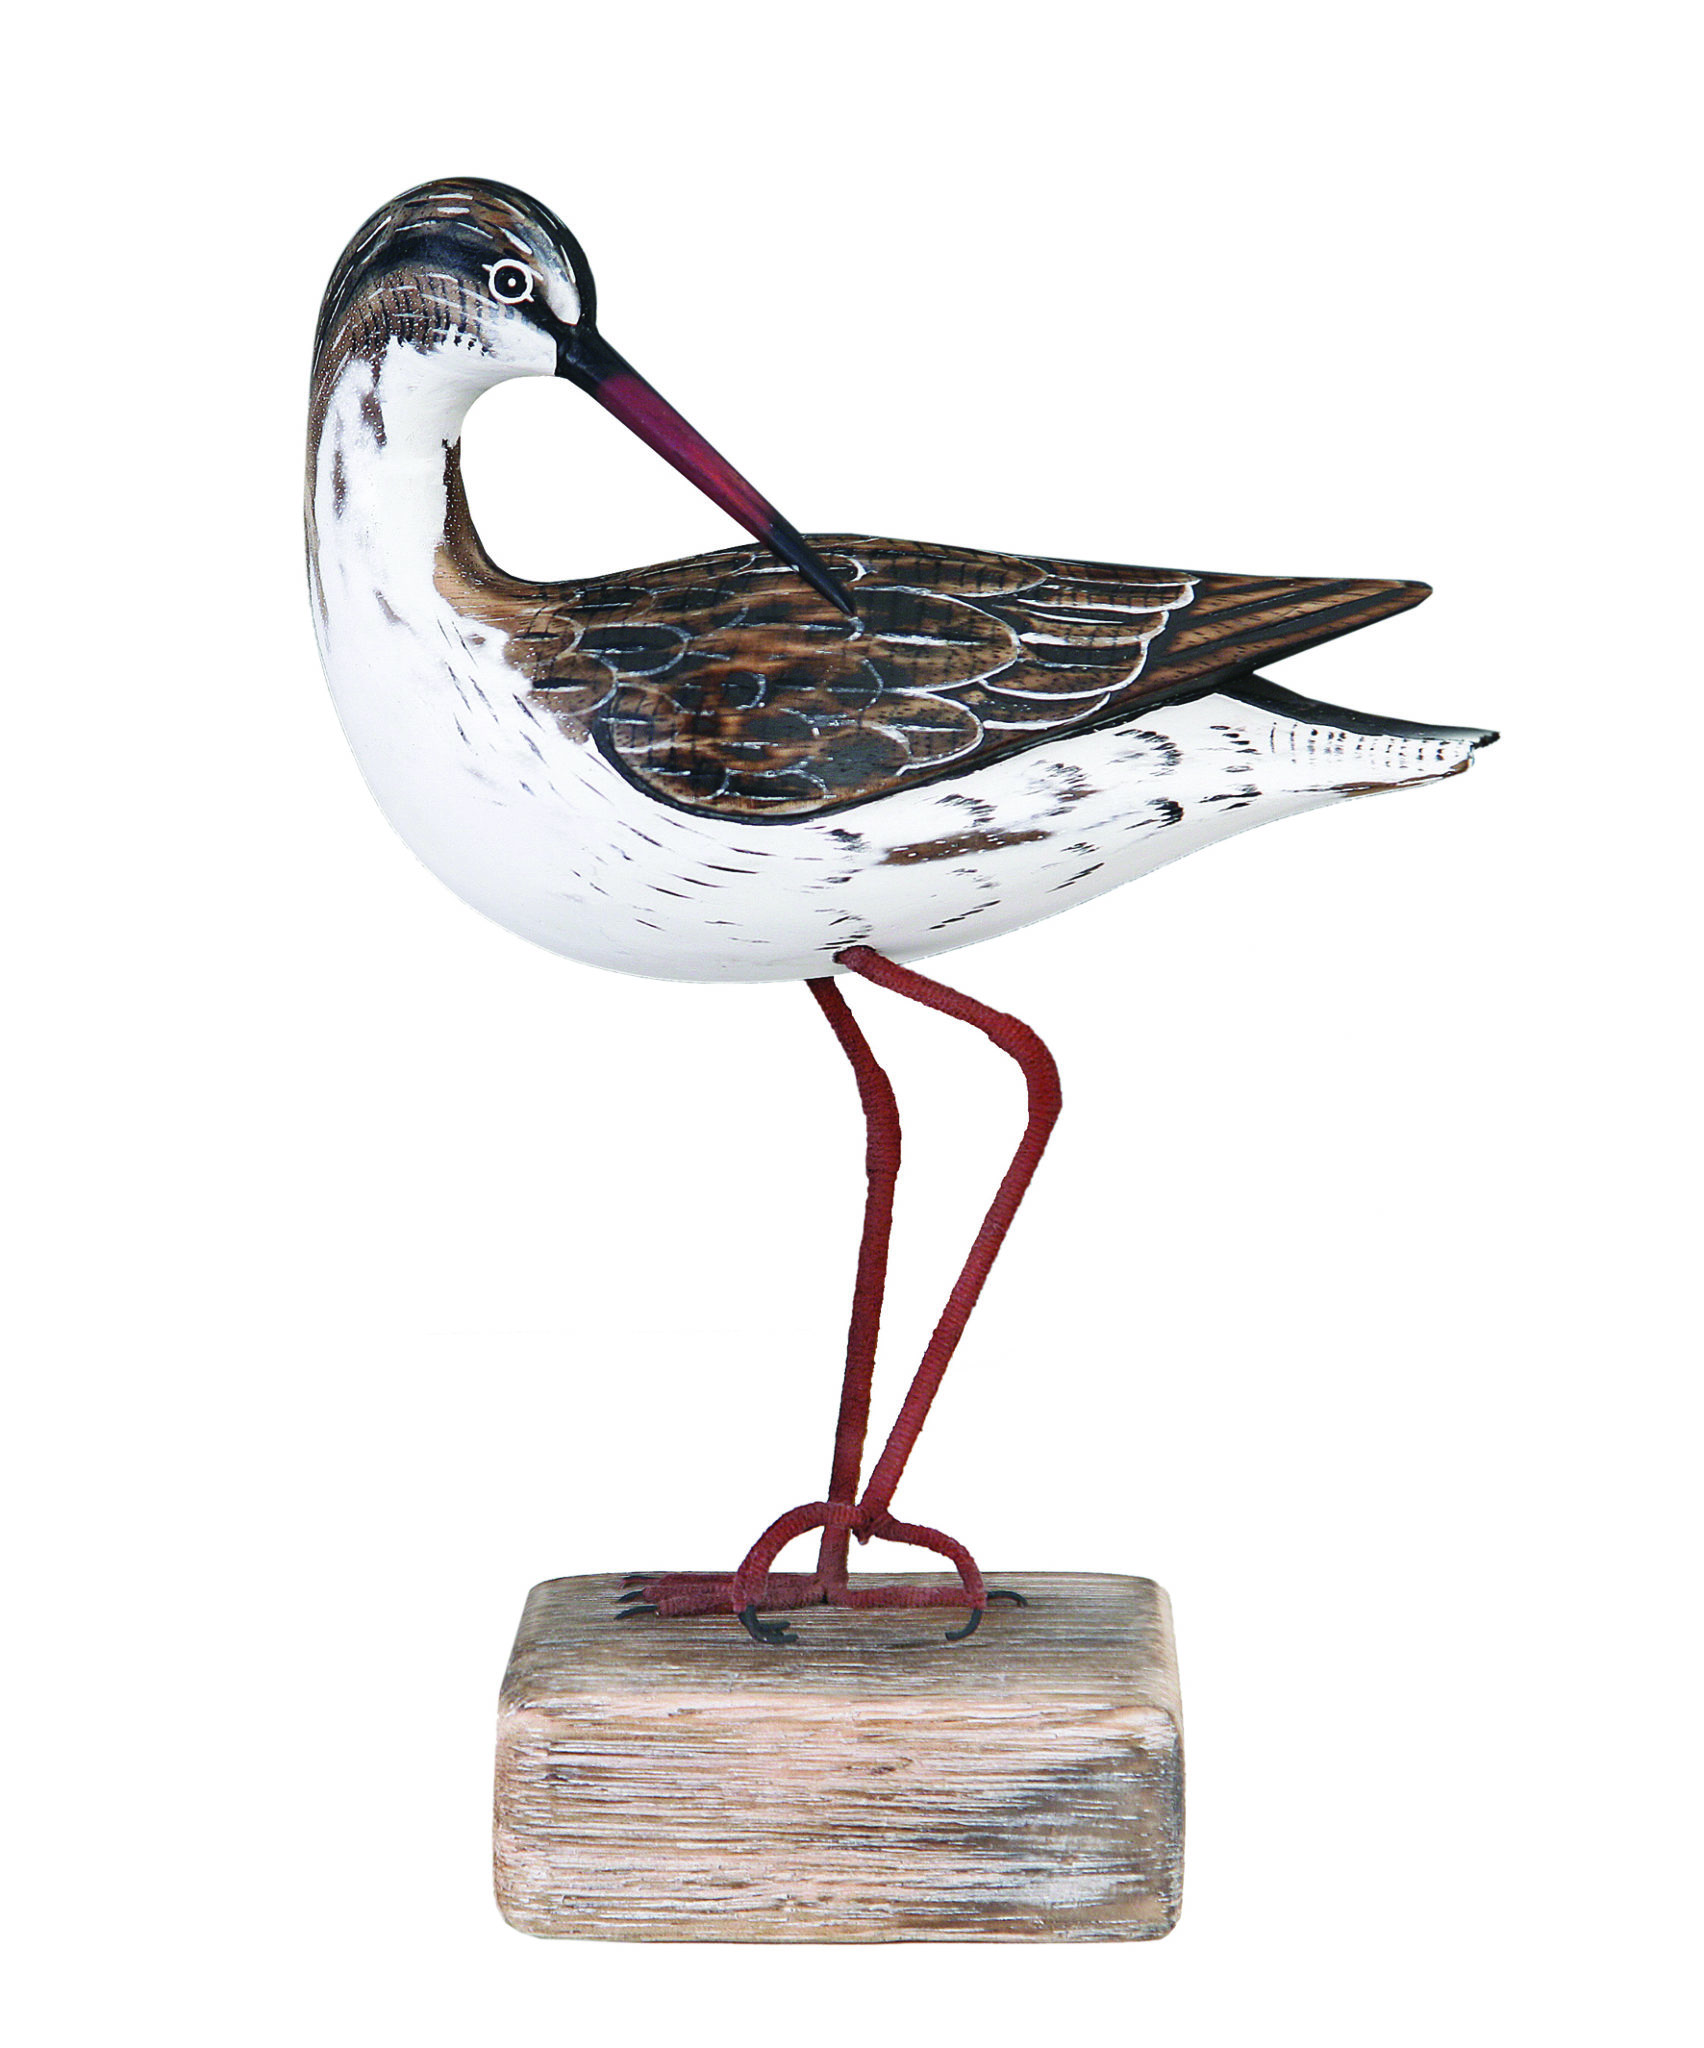 Archipelago Redshank Preening Wood Carving D247 standing on a wood block, hand carved and painted. Fair Trade